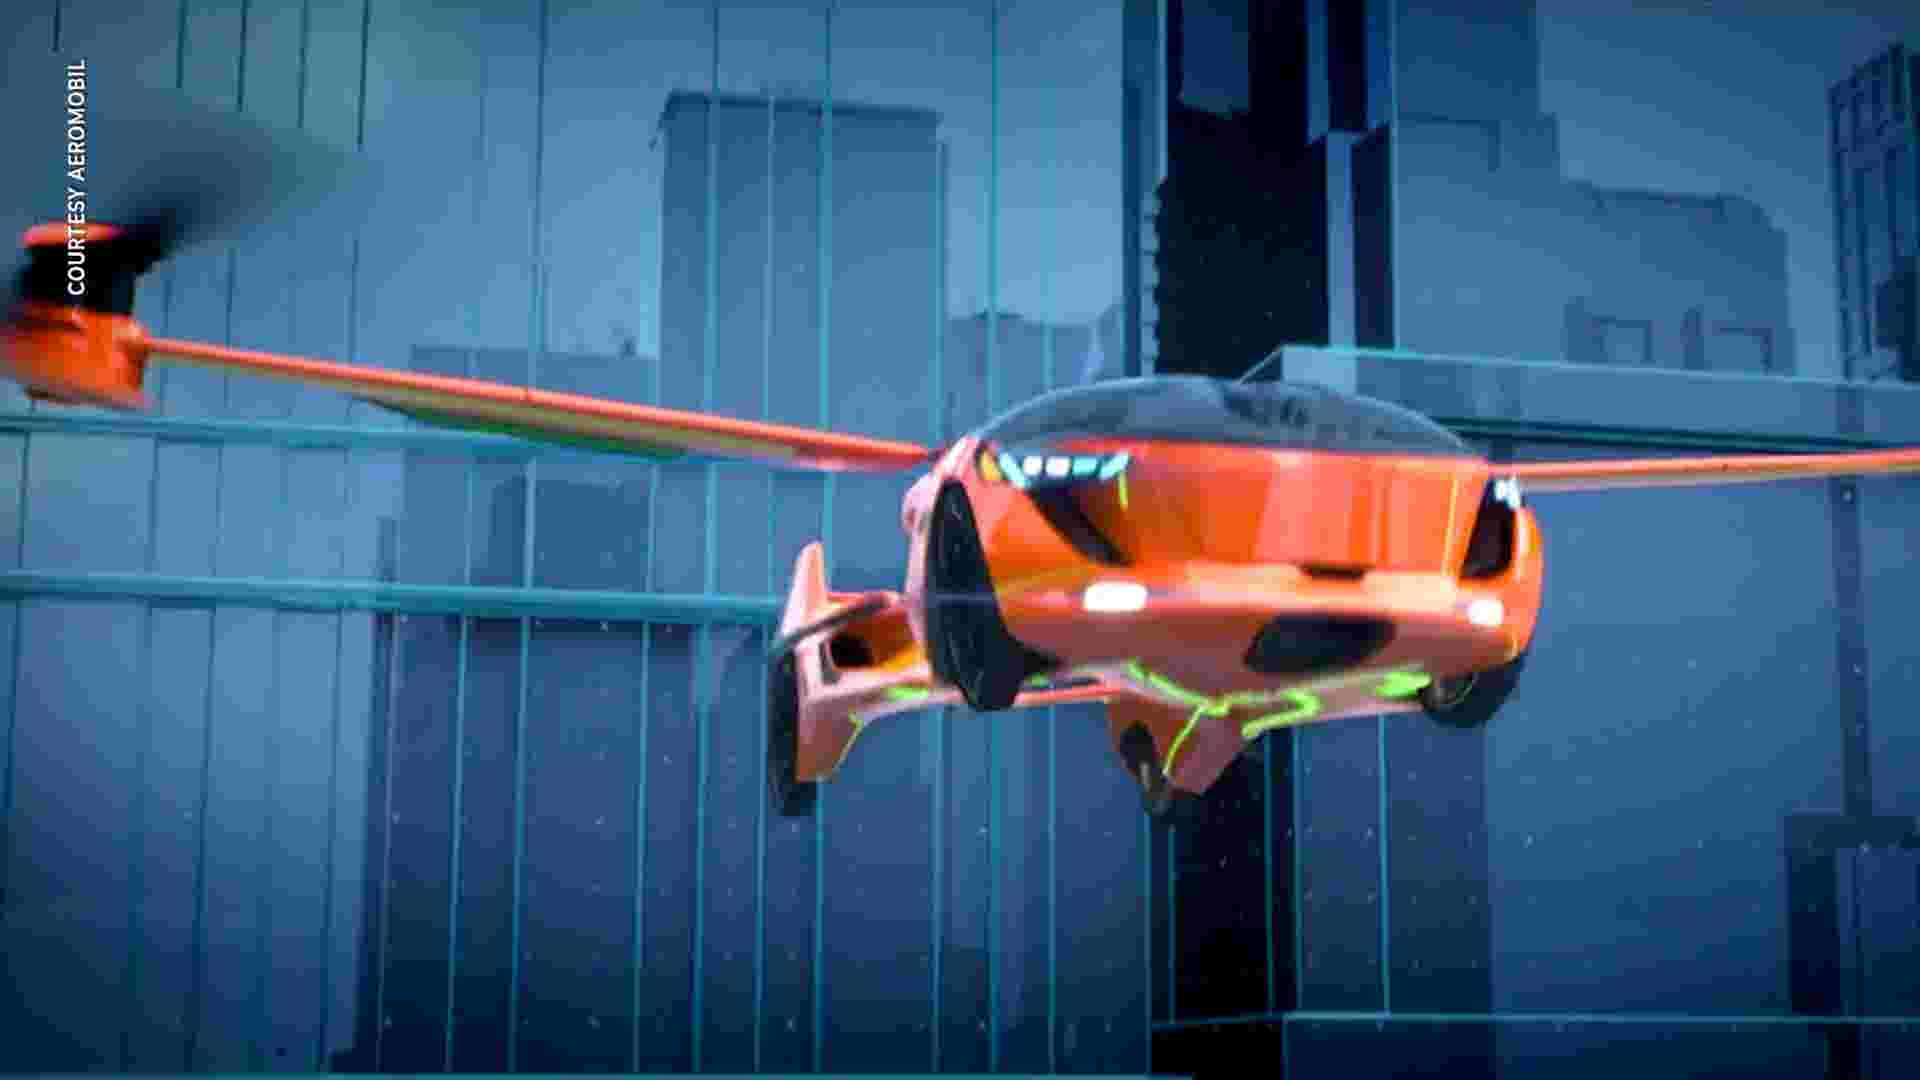 Flying cars, pop culture dreams may be hovering on horizon